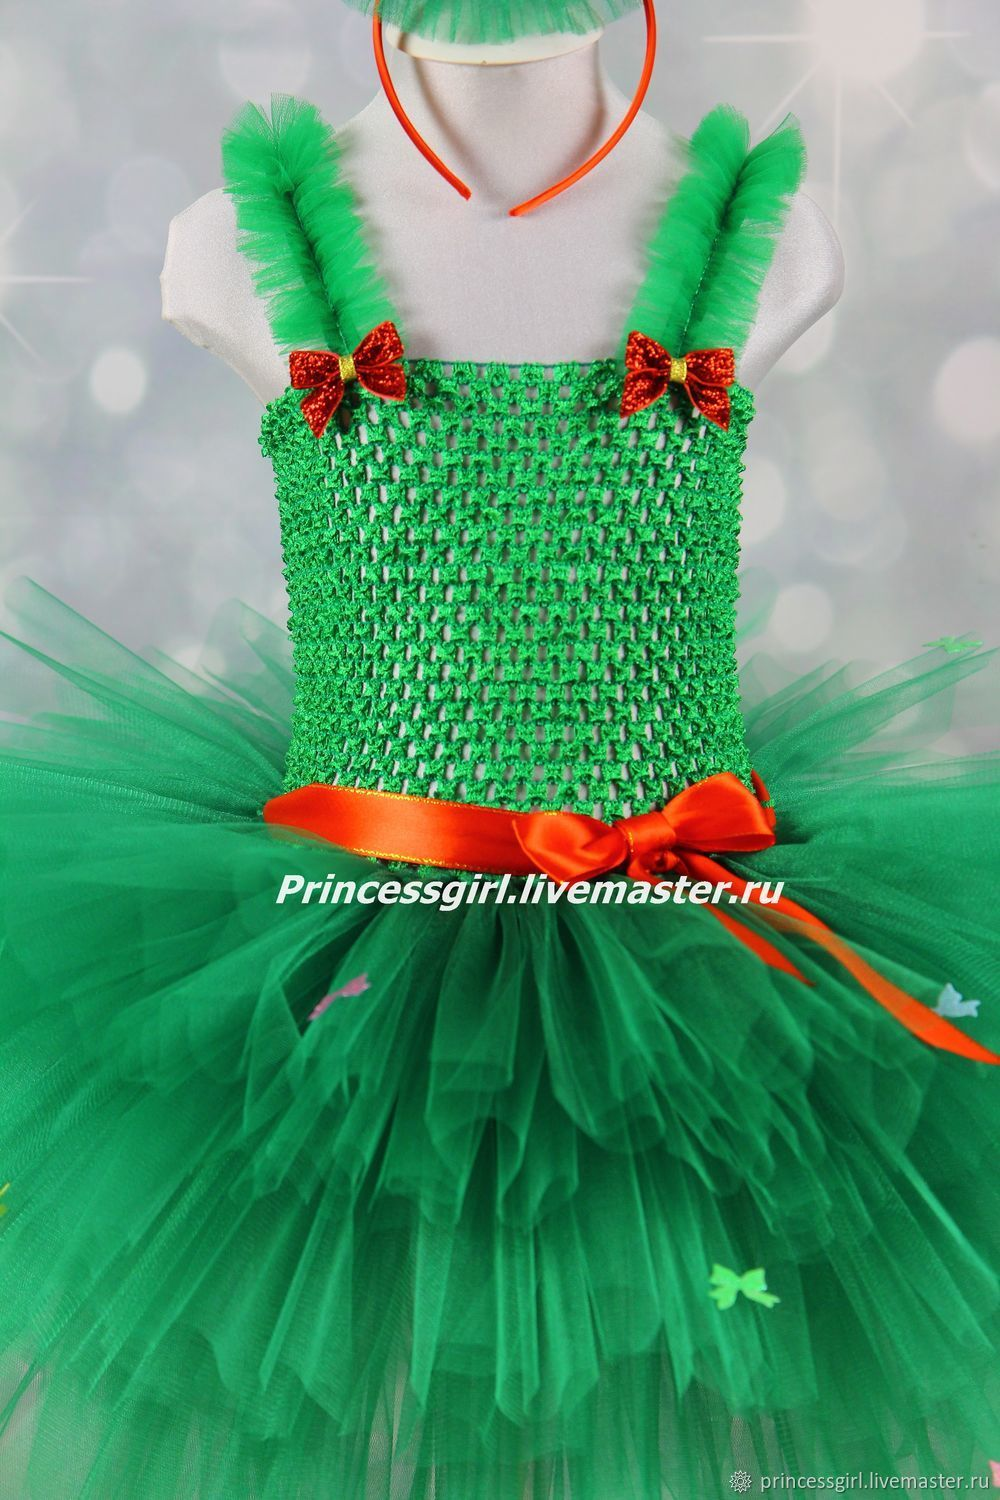 f02e191c Green Kids' Carnival Costumes handmade. Suit Christmas trees. Little  Princess. Online shopping on